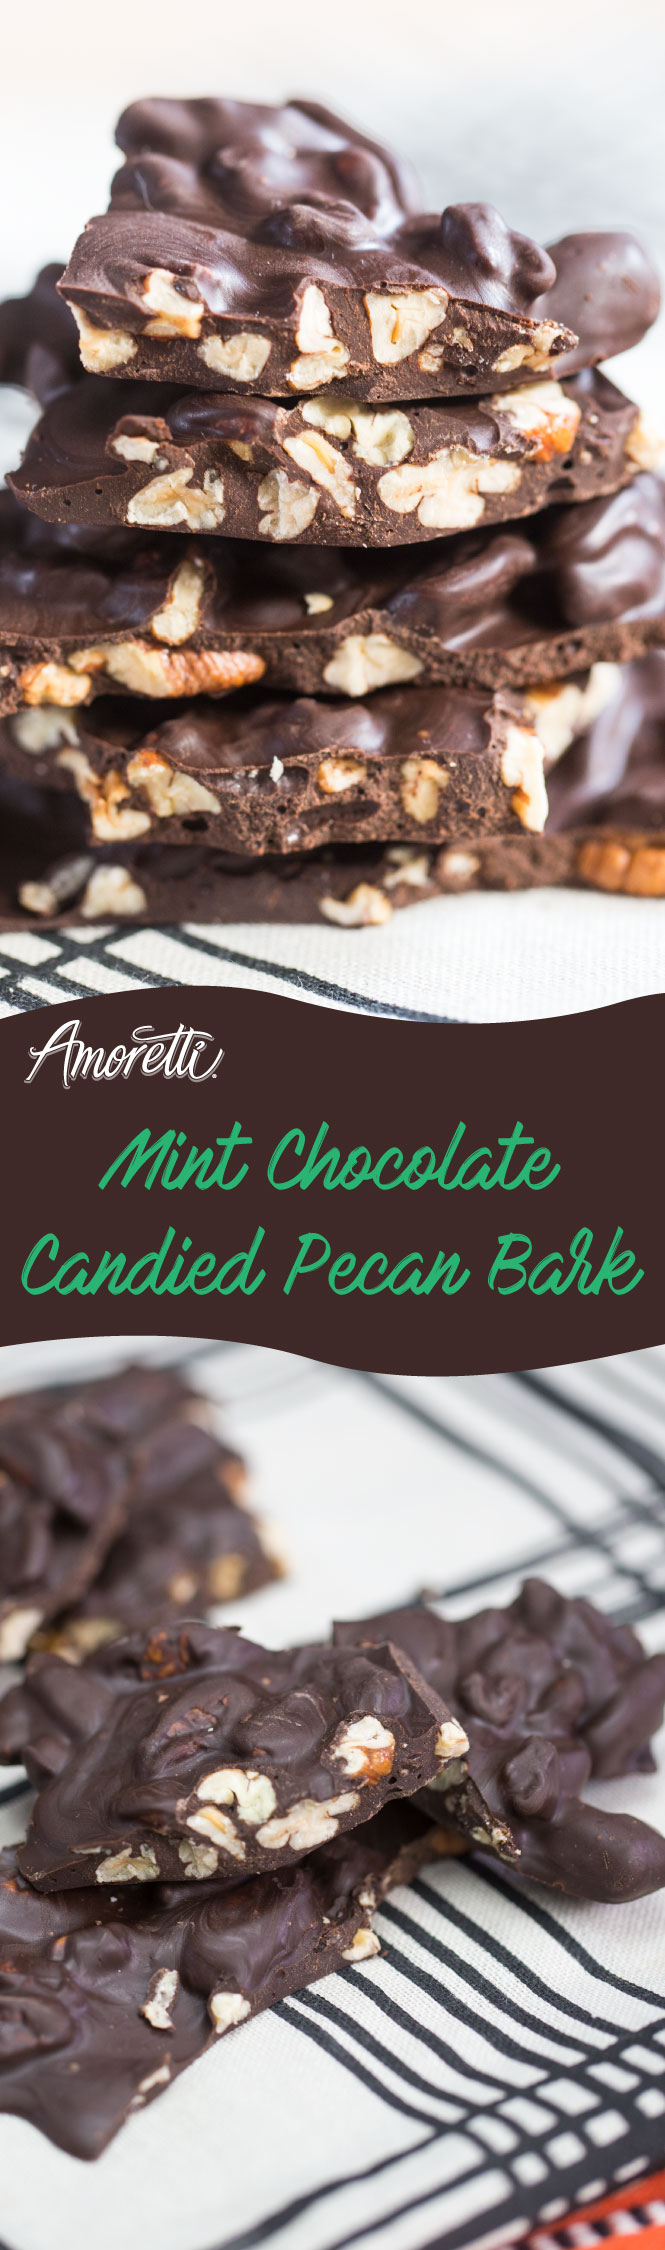 Our Mint Chocolate Candied Pecan Bark is just what you want to bring to a party or just munch on at home.